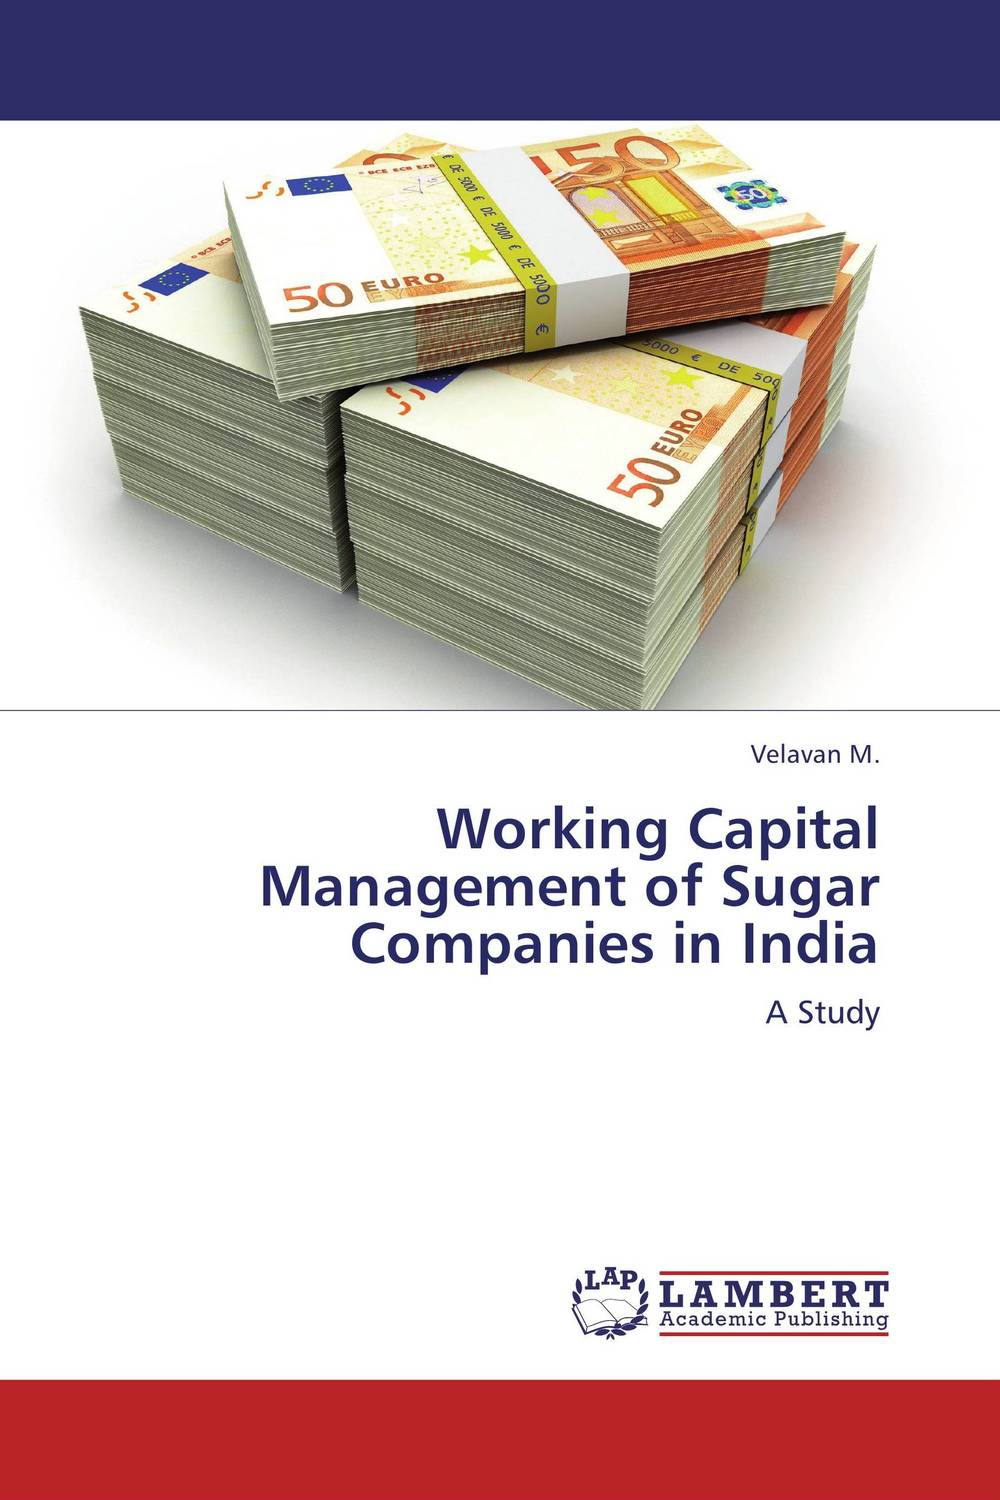 Working Capital Management of Sugar Companies in India james sagner working capital management applications and case studies